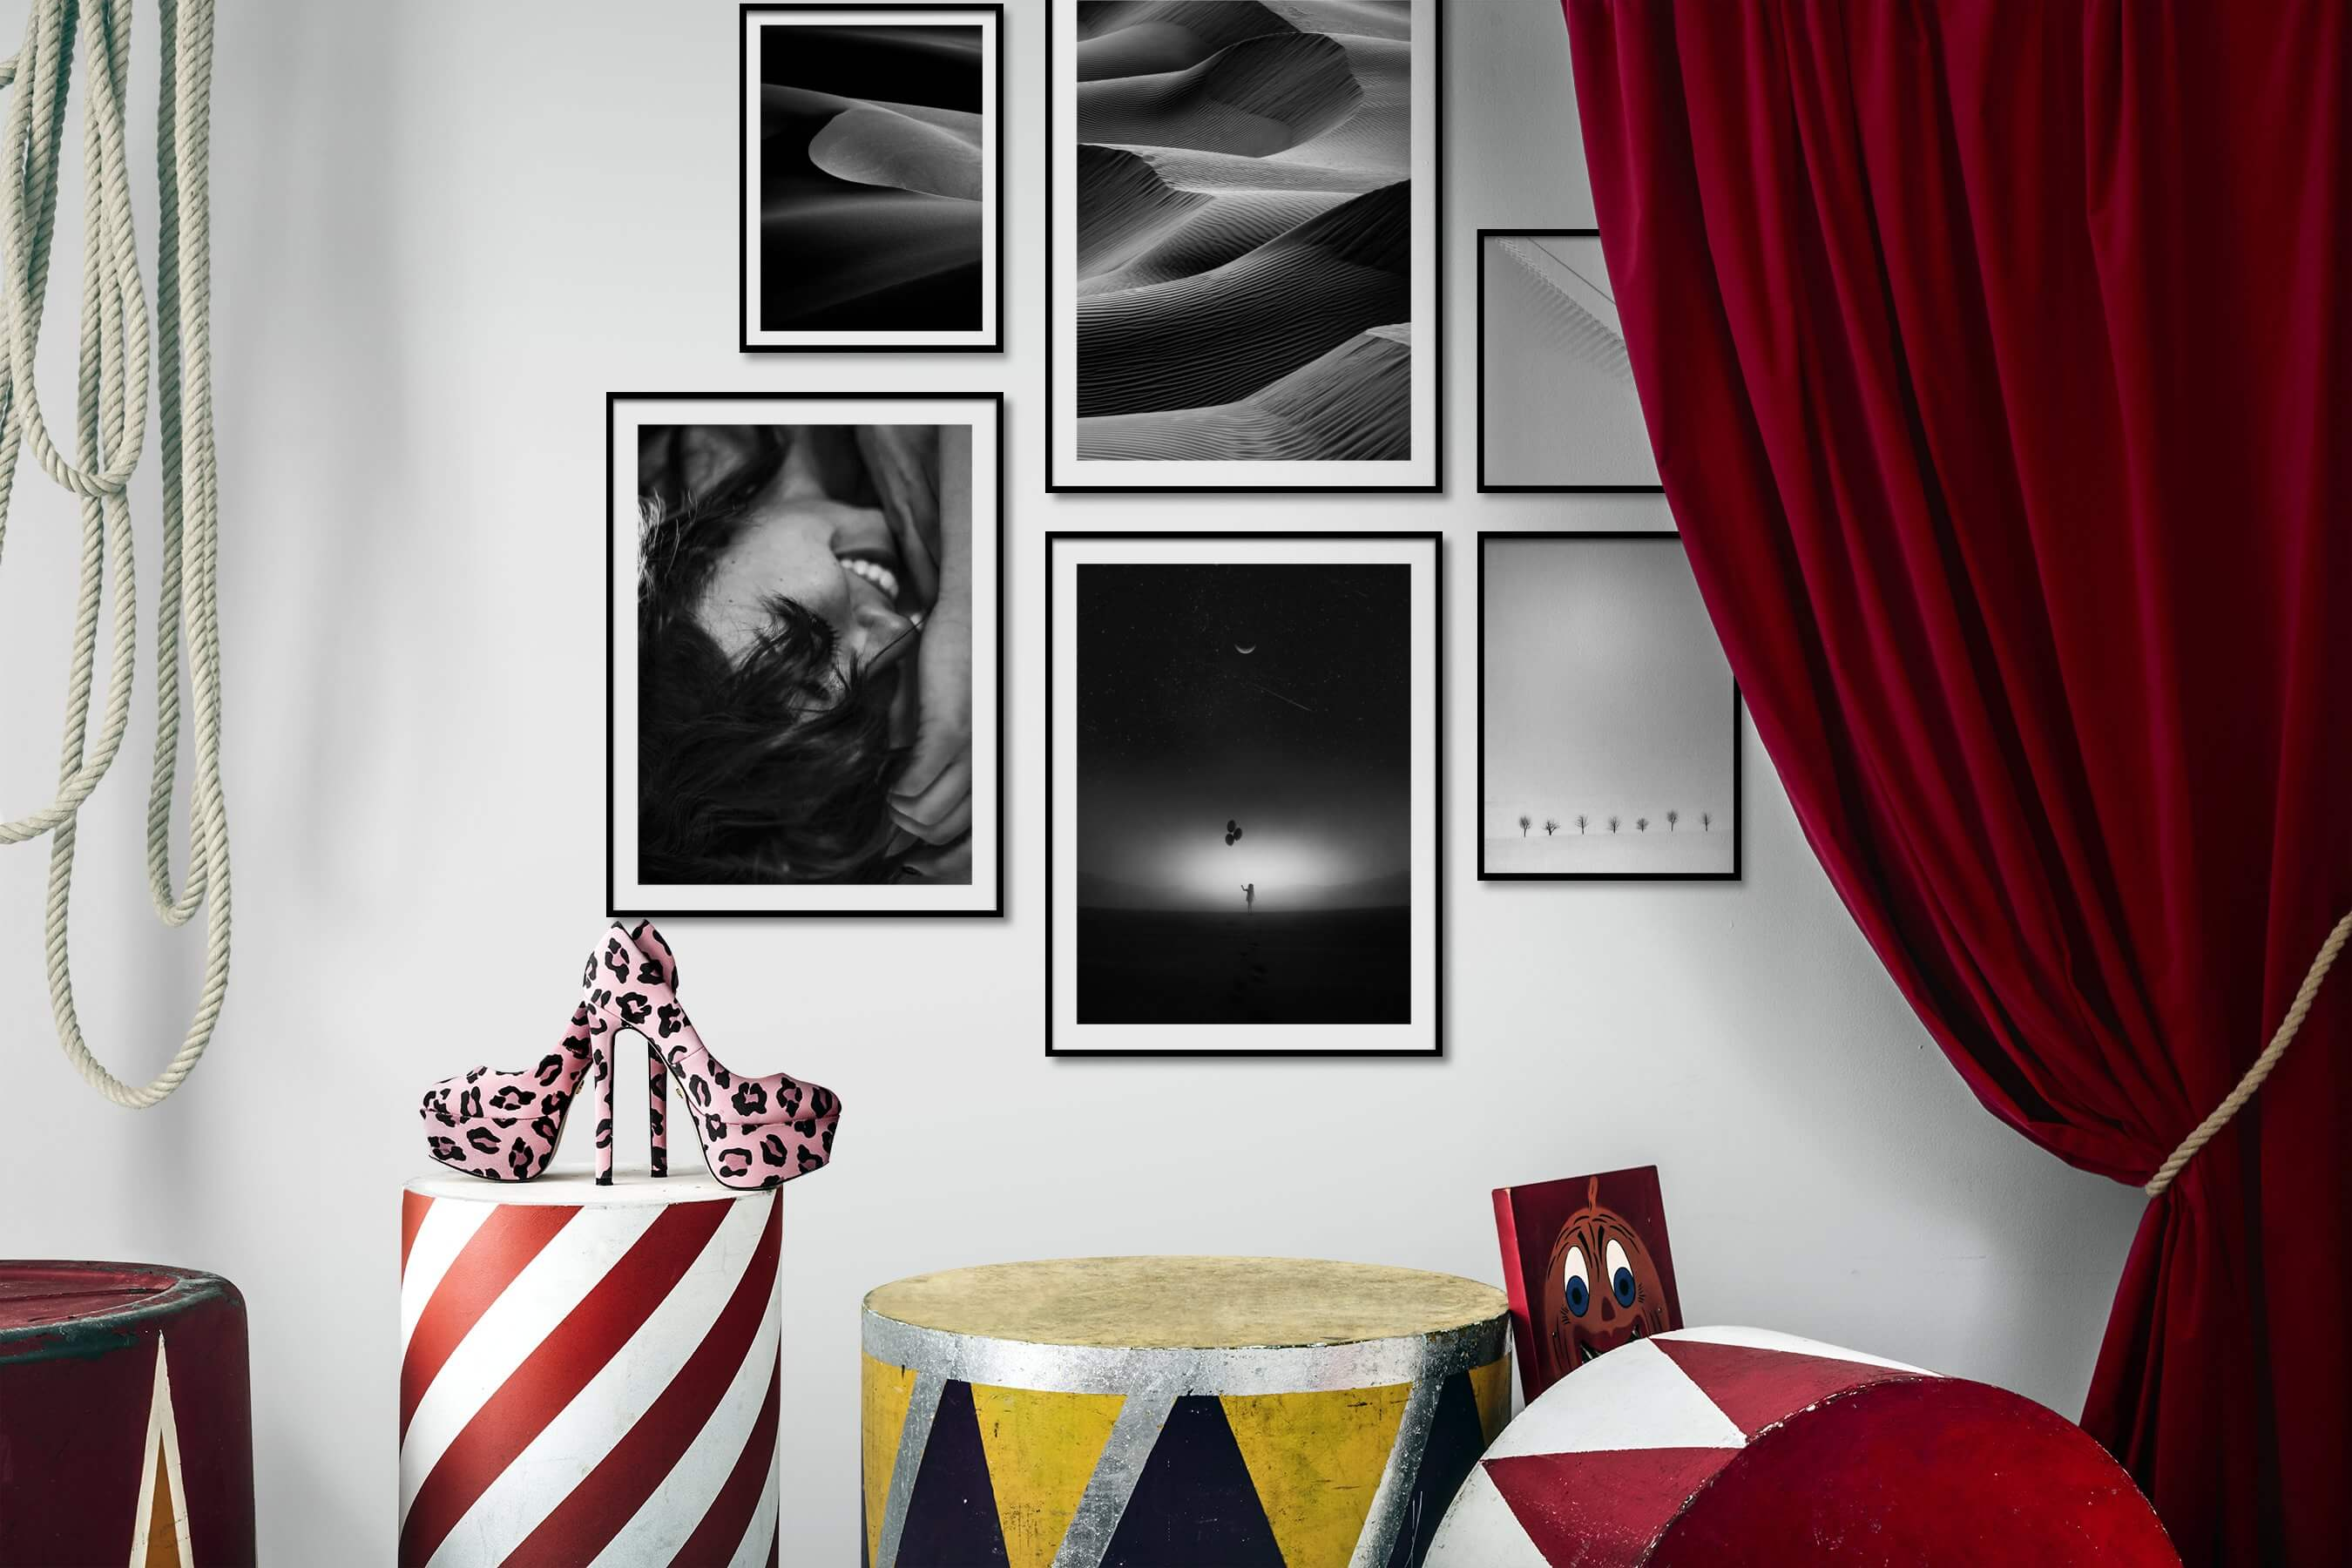 Gallery wall idea with six framed pictures arranged on a wall depicting Black & White, For the Minimalist, Nature, For the Moderate, Fashion & Beauty, Bright Tones, and Country Life